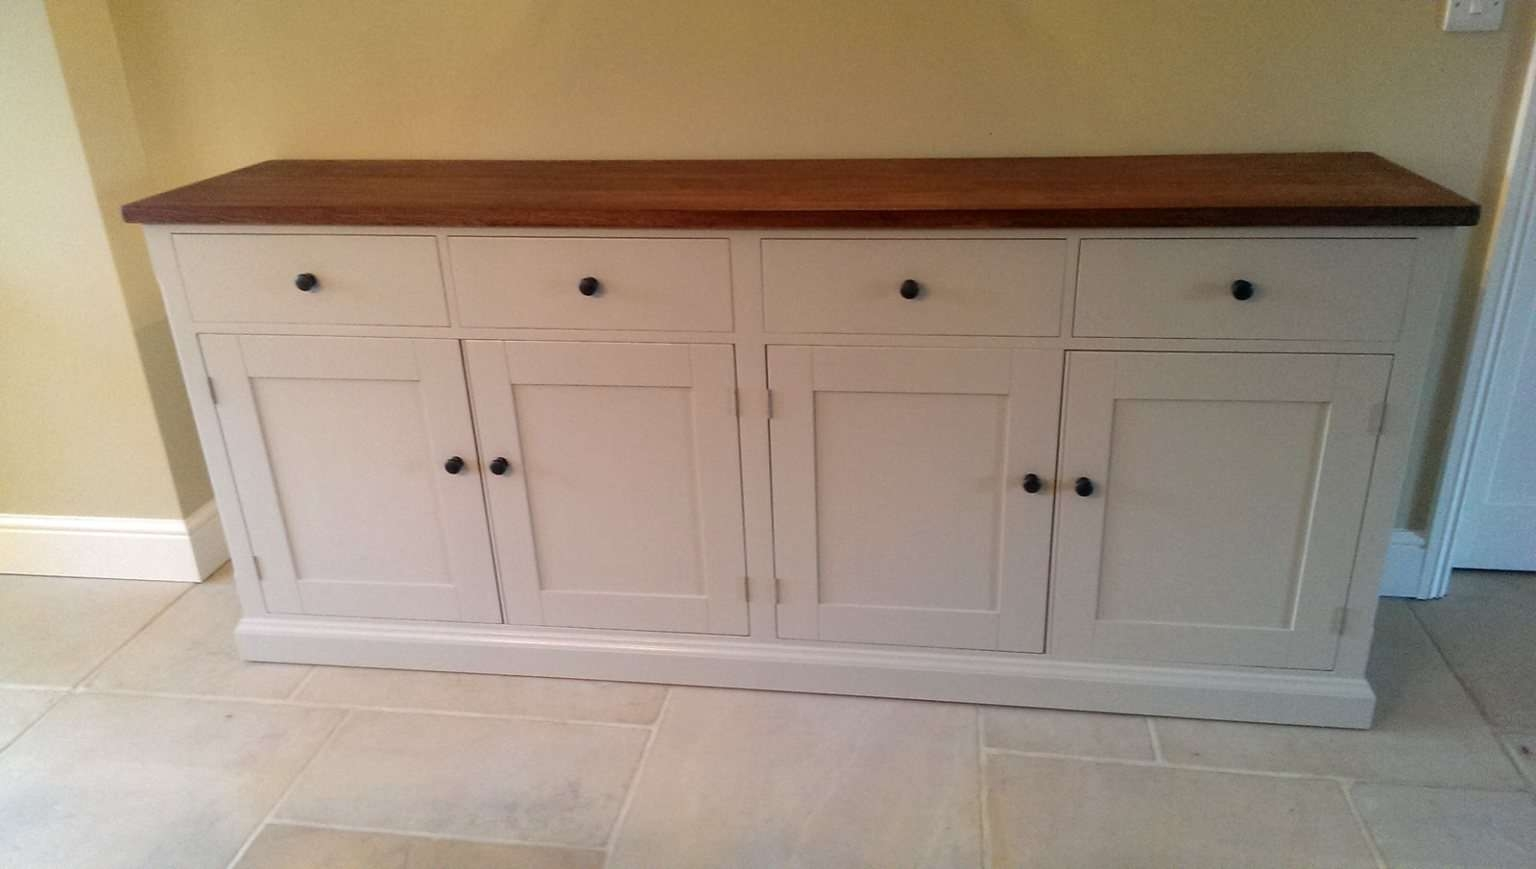 Bespoke Large Painted Sideboard With Oak Top – Solid Wood Inside Bespoke Sideboards (View 4 of 20)